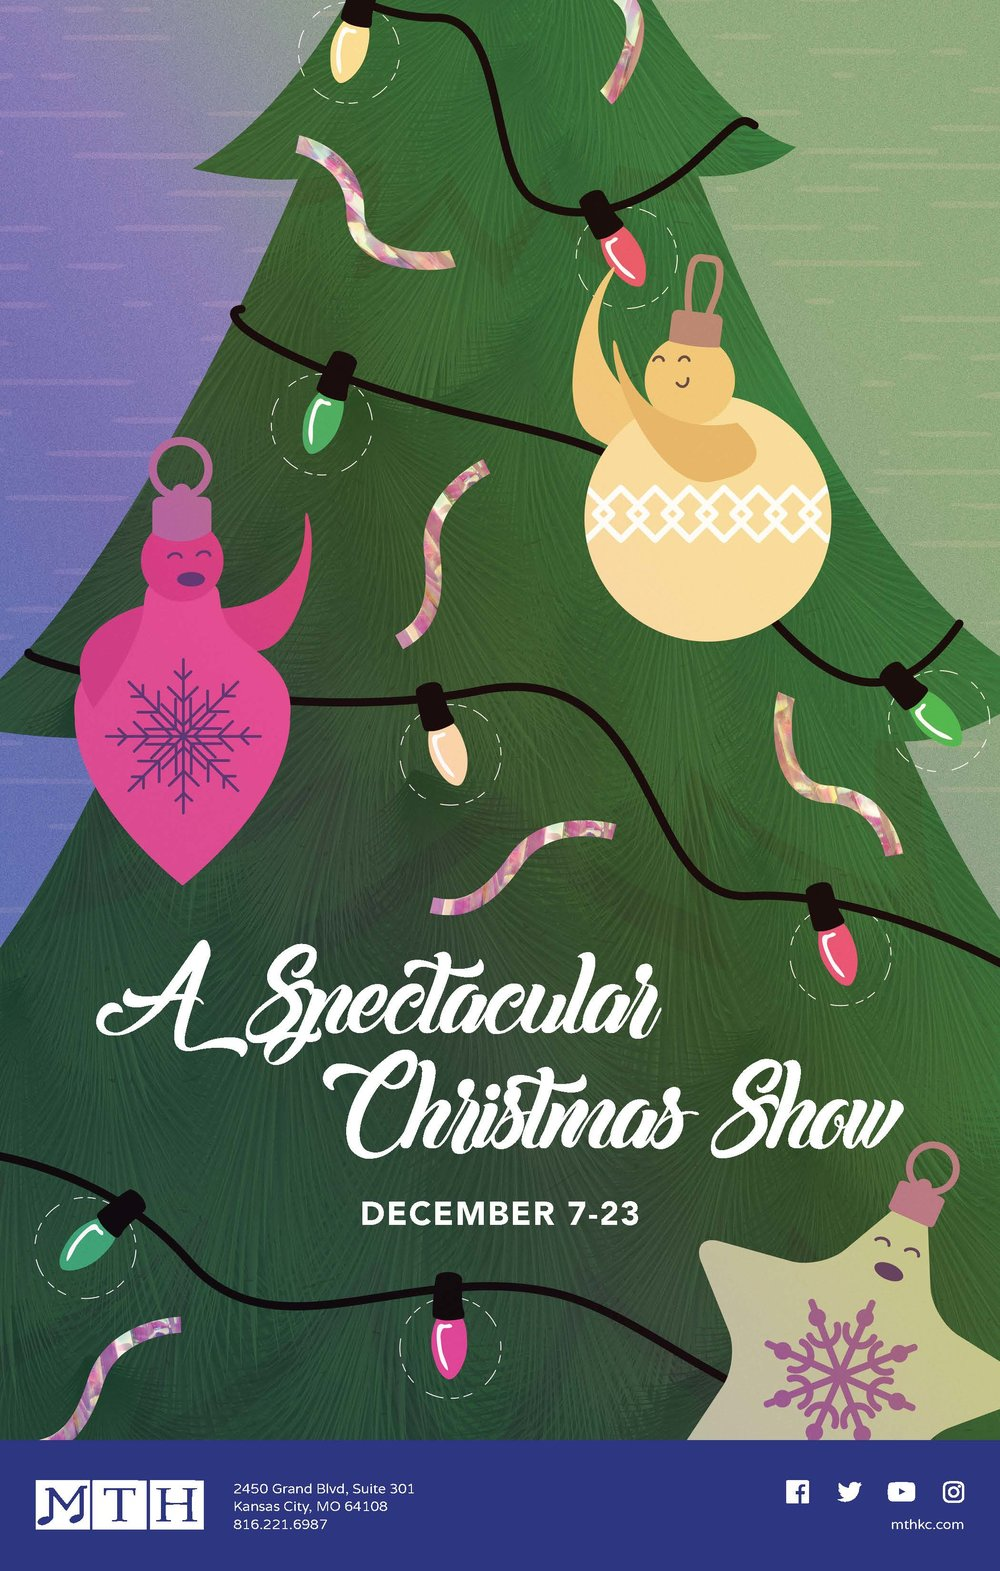 SpectacularChristmasShow_Concepts_Page_1.jpg